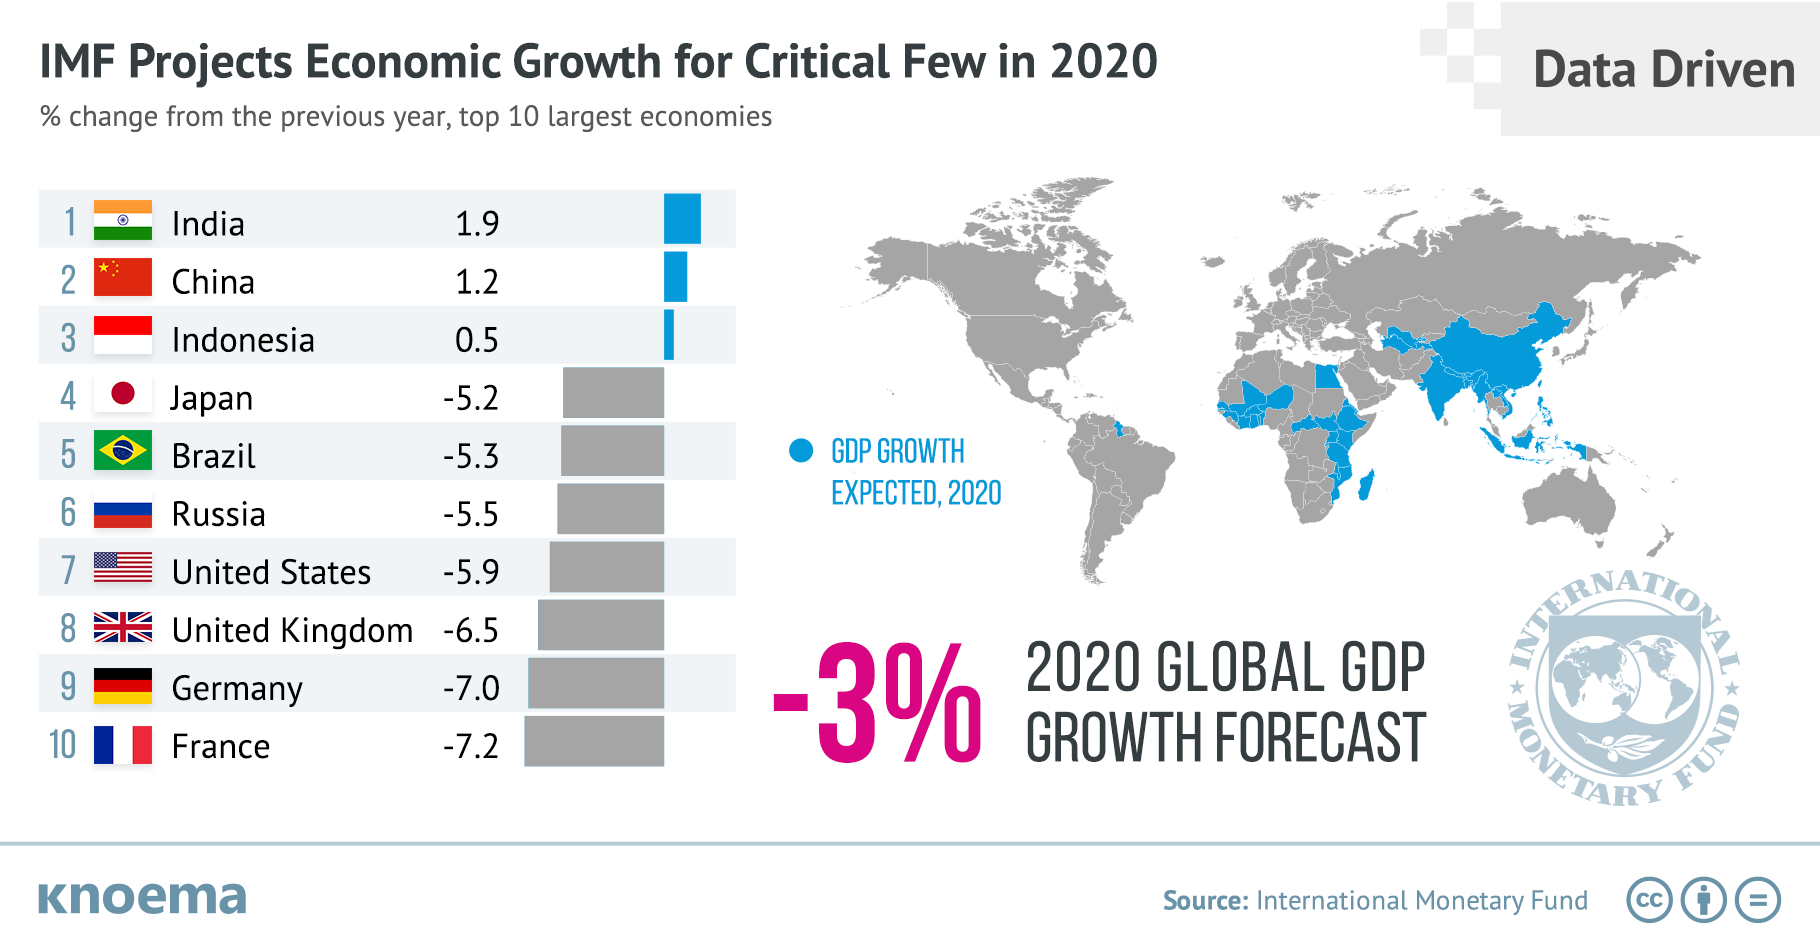 How Deep an Economic Decline Can the World Expect in 2020?